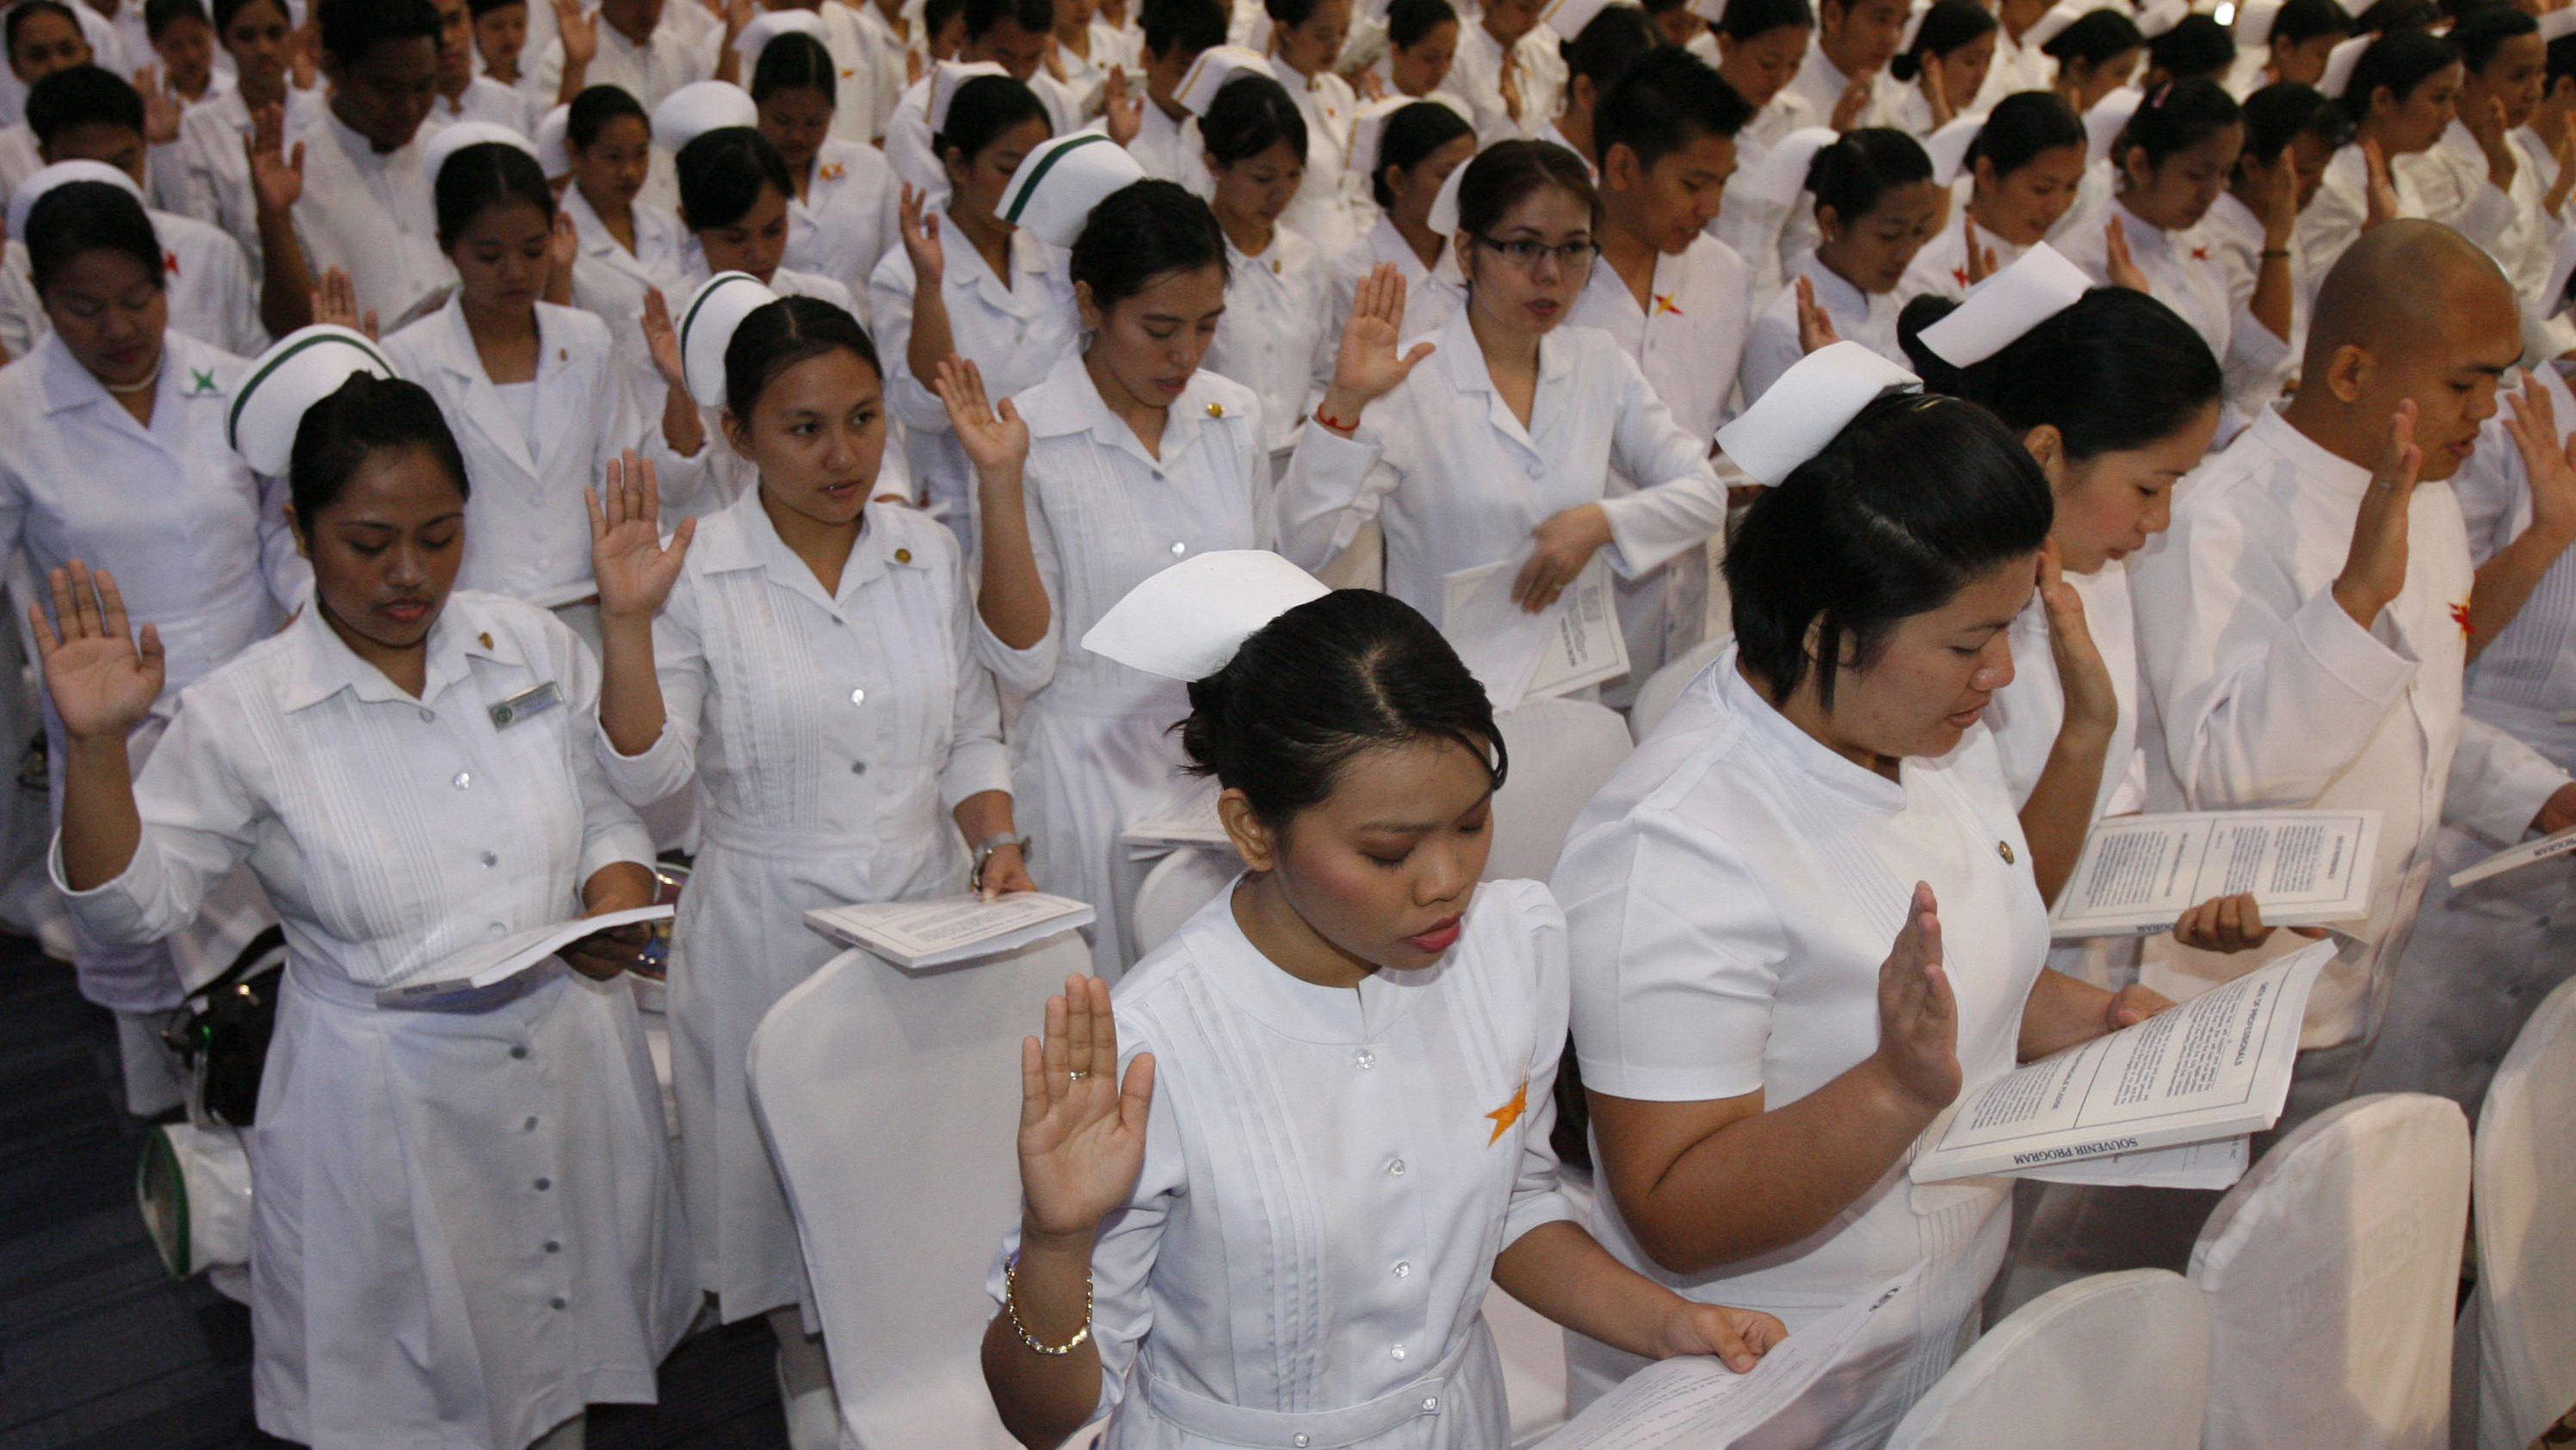 A photo of Filipino nursing students being sworn in